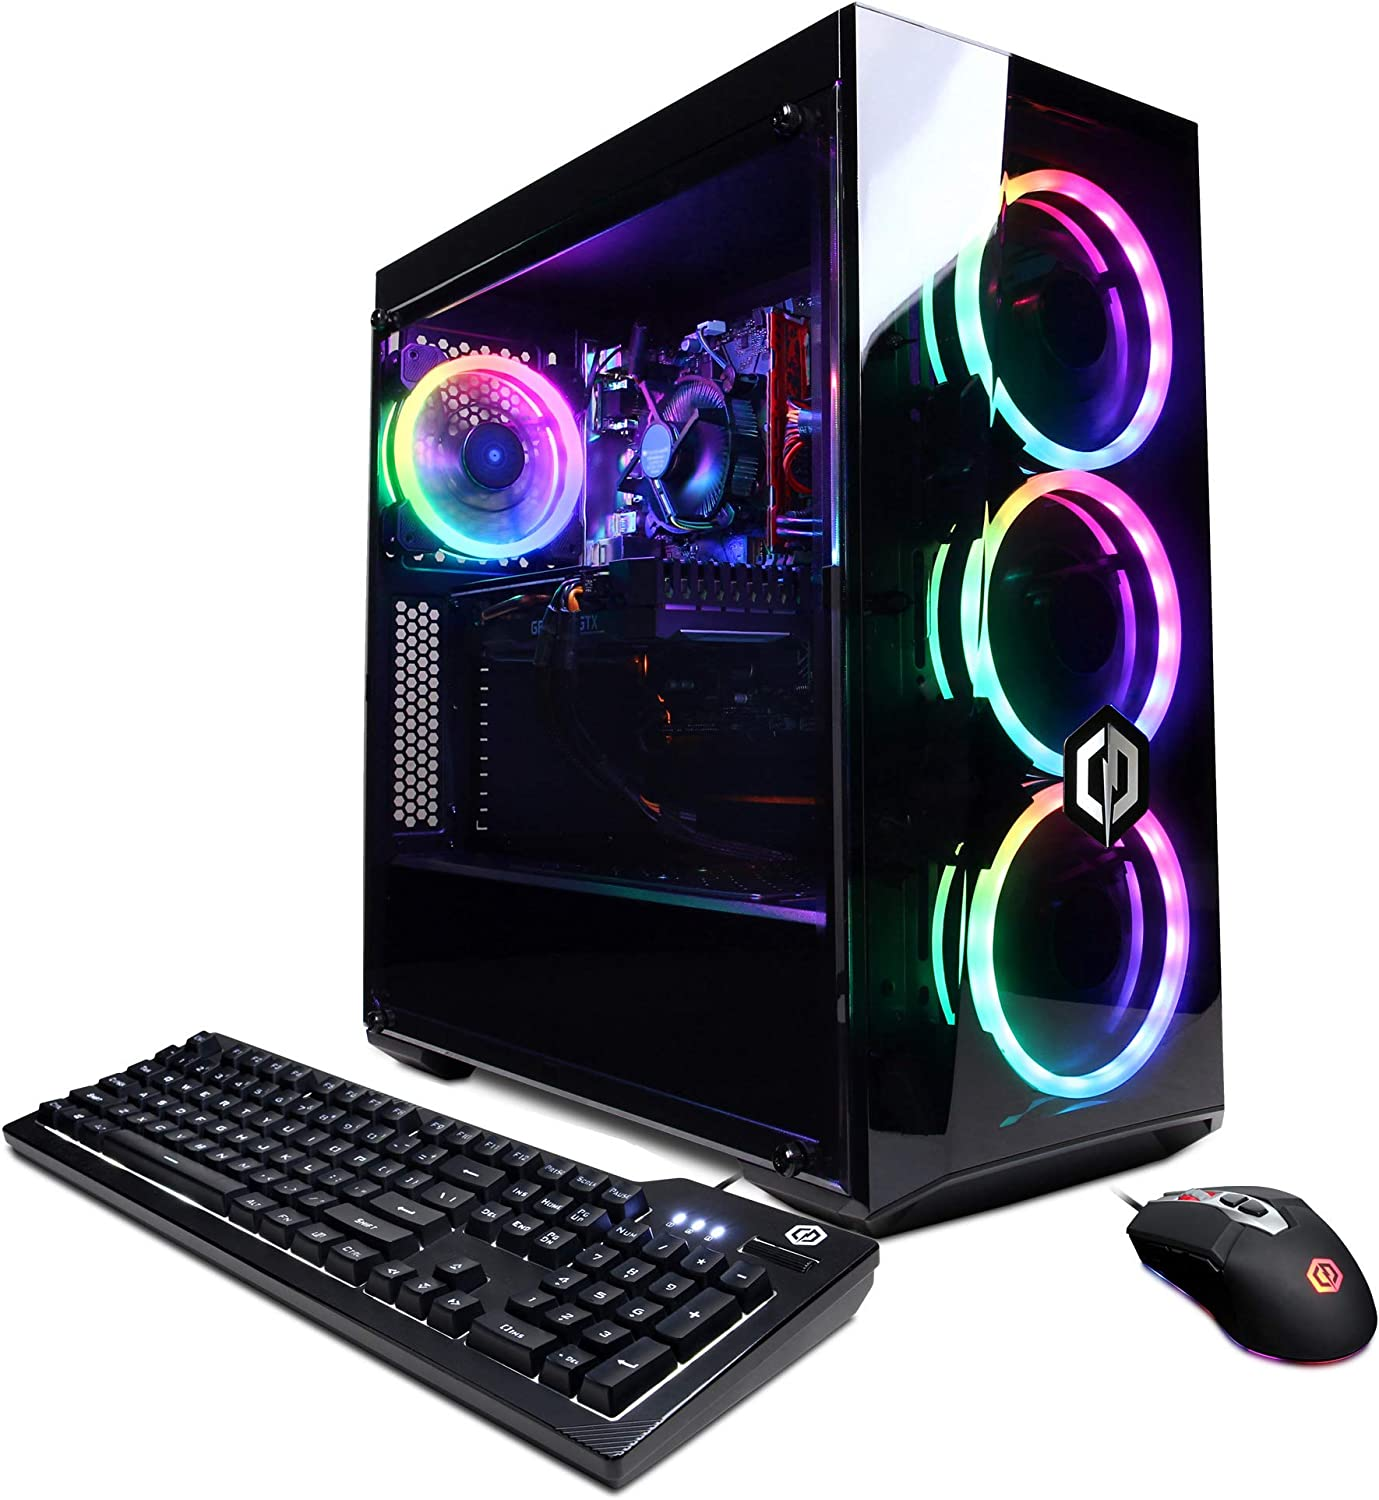 CyberpowerPC Gamer Xtreme VR Gaming PC, Intel i5-10400F 2.9GHz, GeForce GTX 1660 Super 6GB, 8GB DDR4, 500GB NVMe SSD, WiFi Ready & Win 10 Home (GXiVR8060A9)